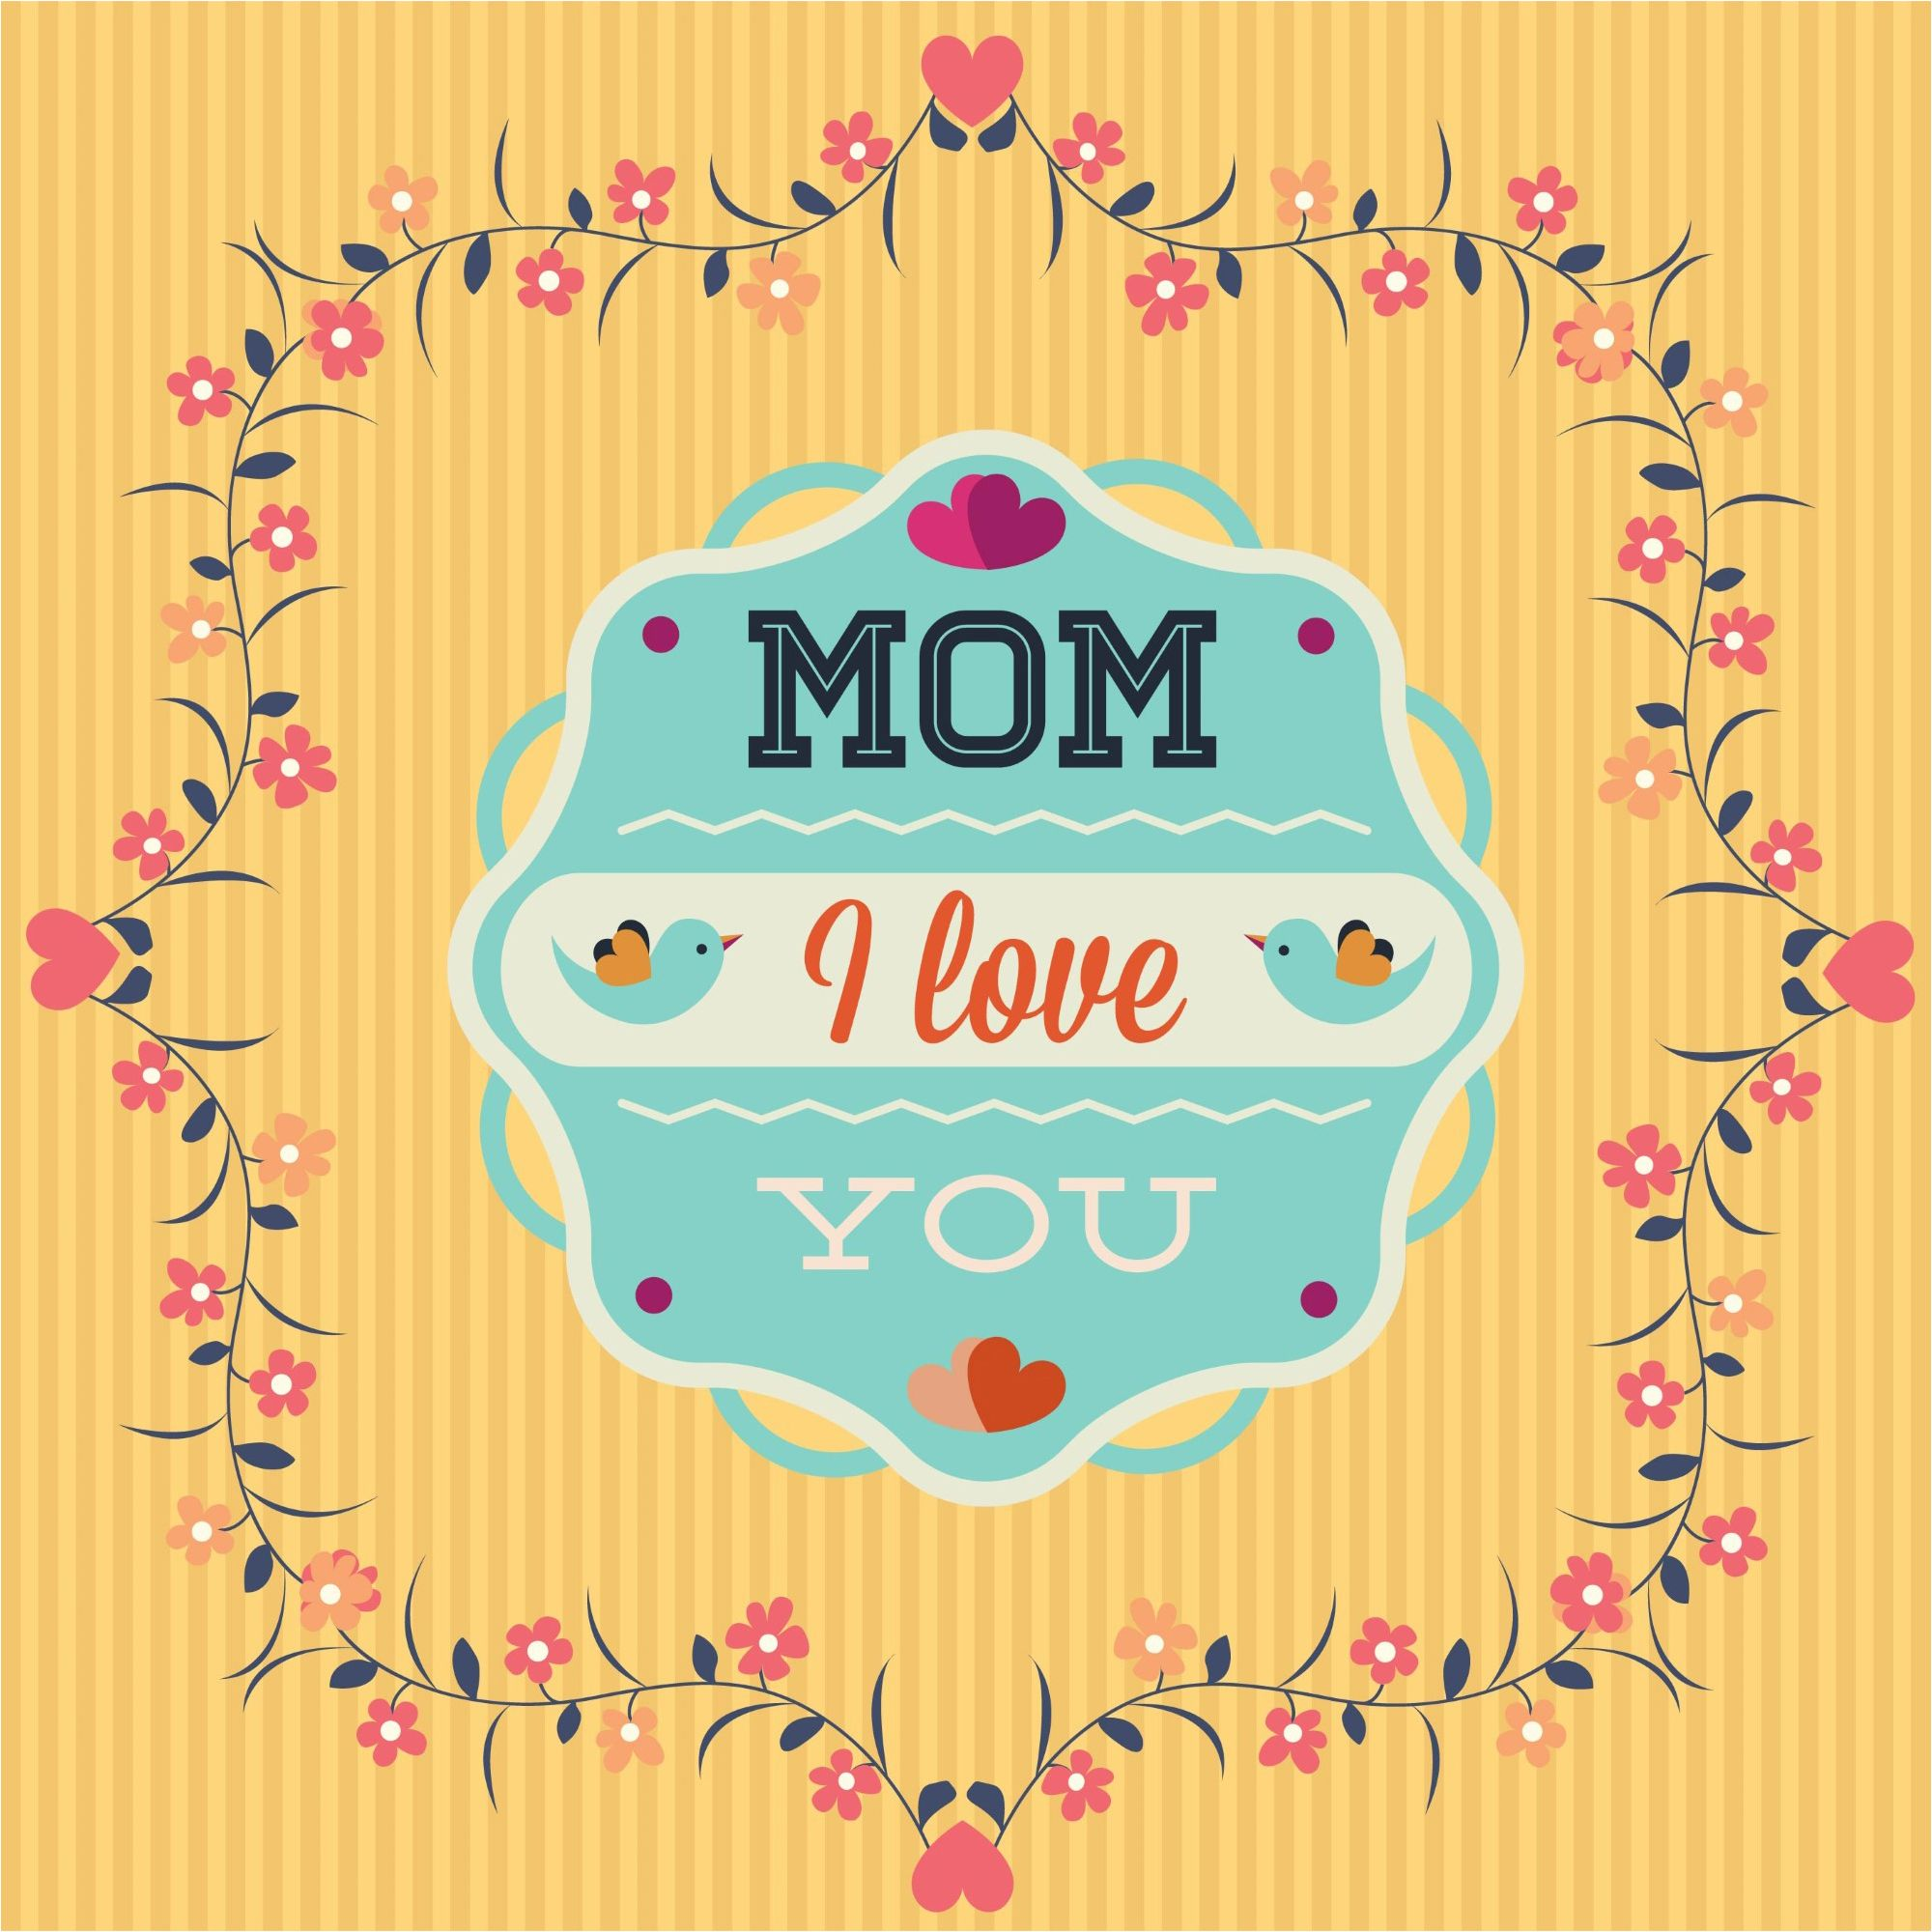 I Love You Mom Greeting Card Design Background Graphics   Best